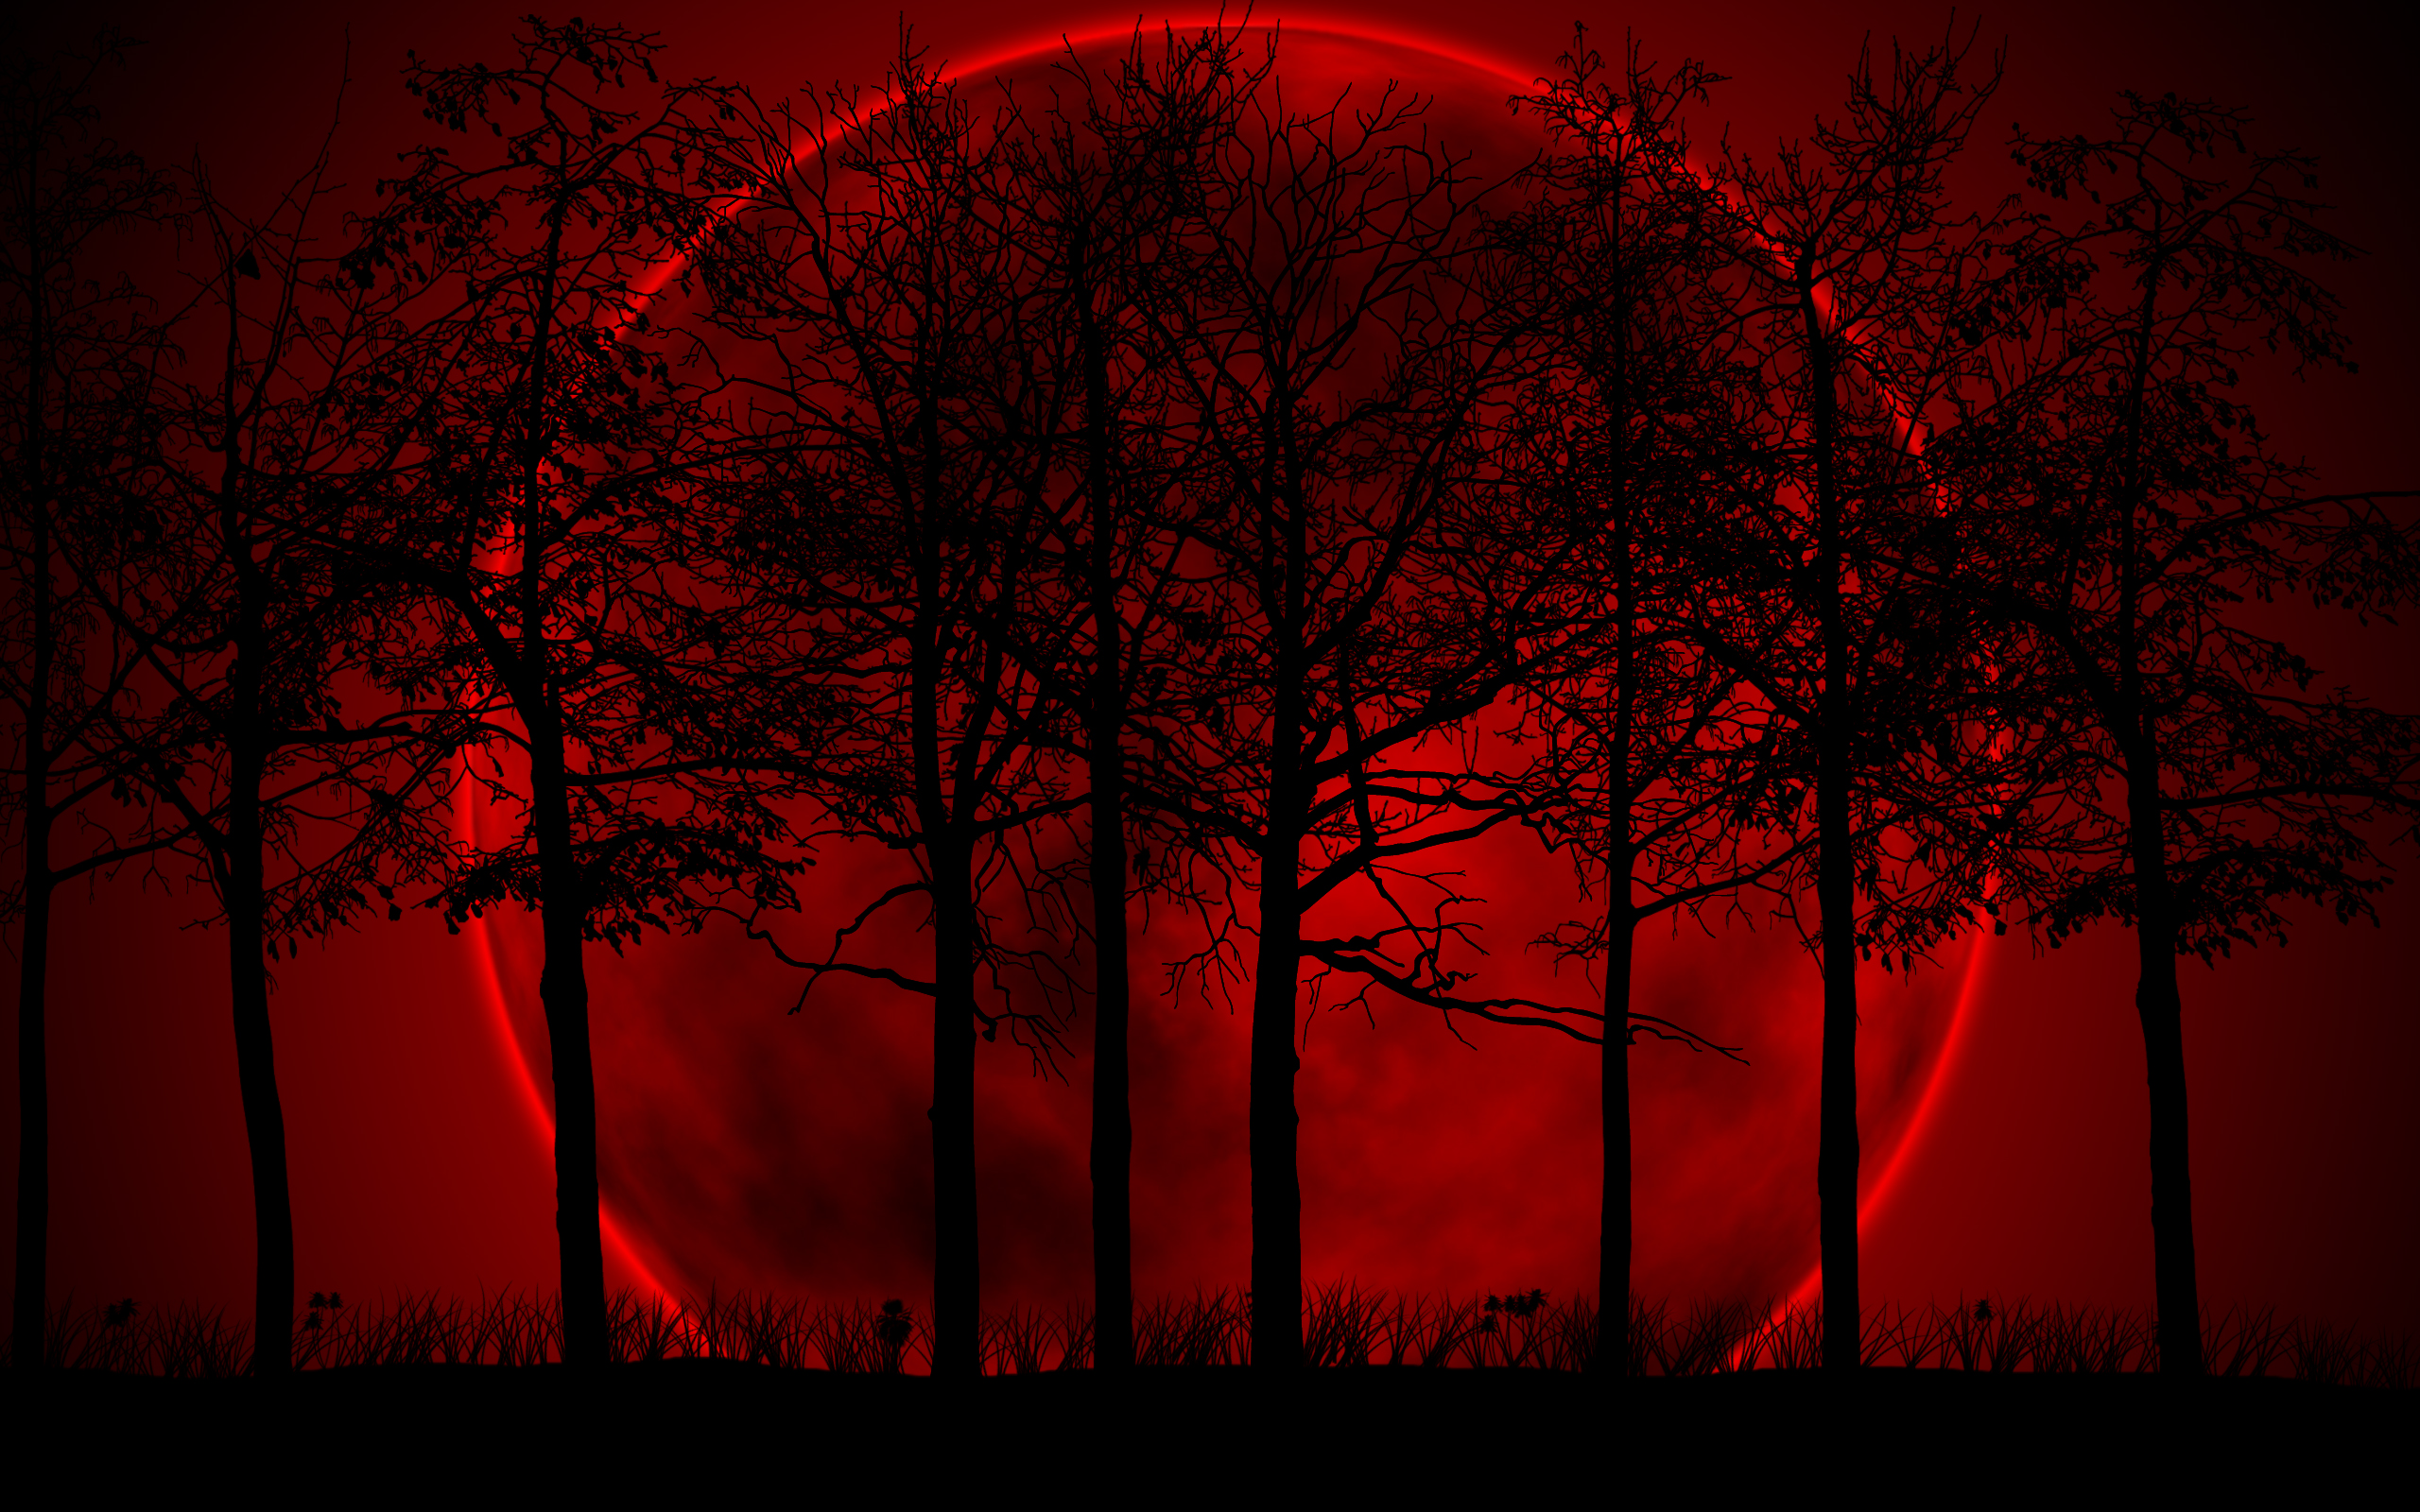 Blood Moon Frame Backgrounds for Powerpoint Templates   PPT 2560x1600